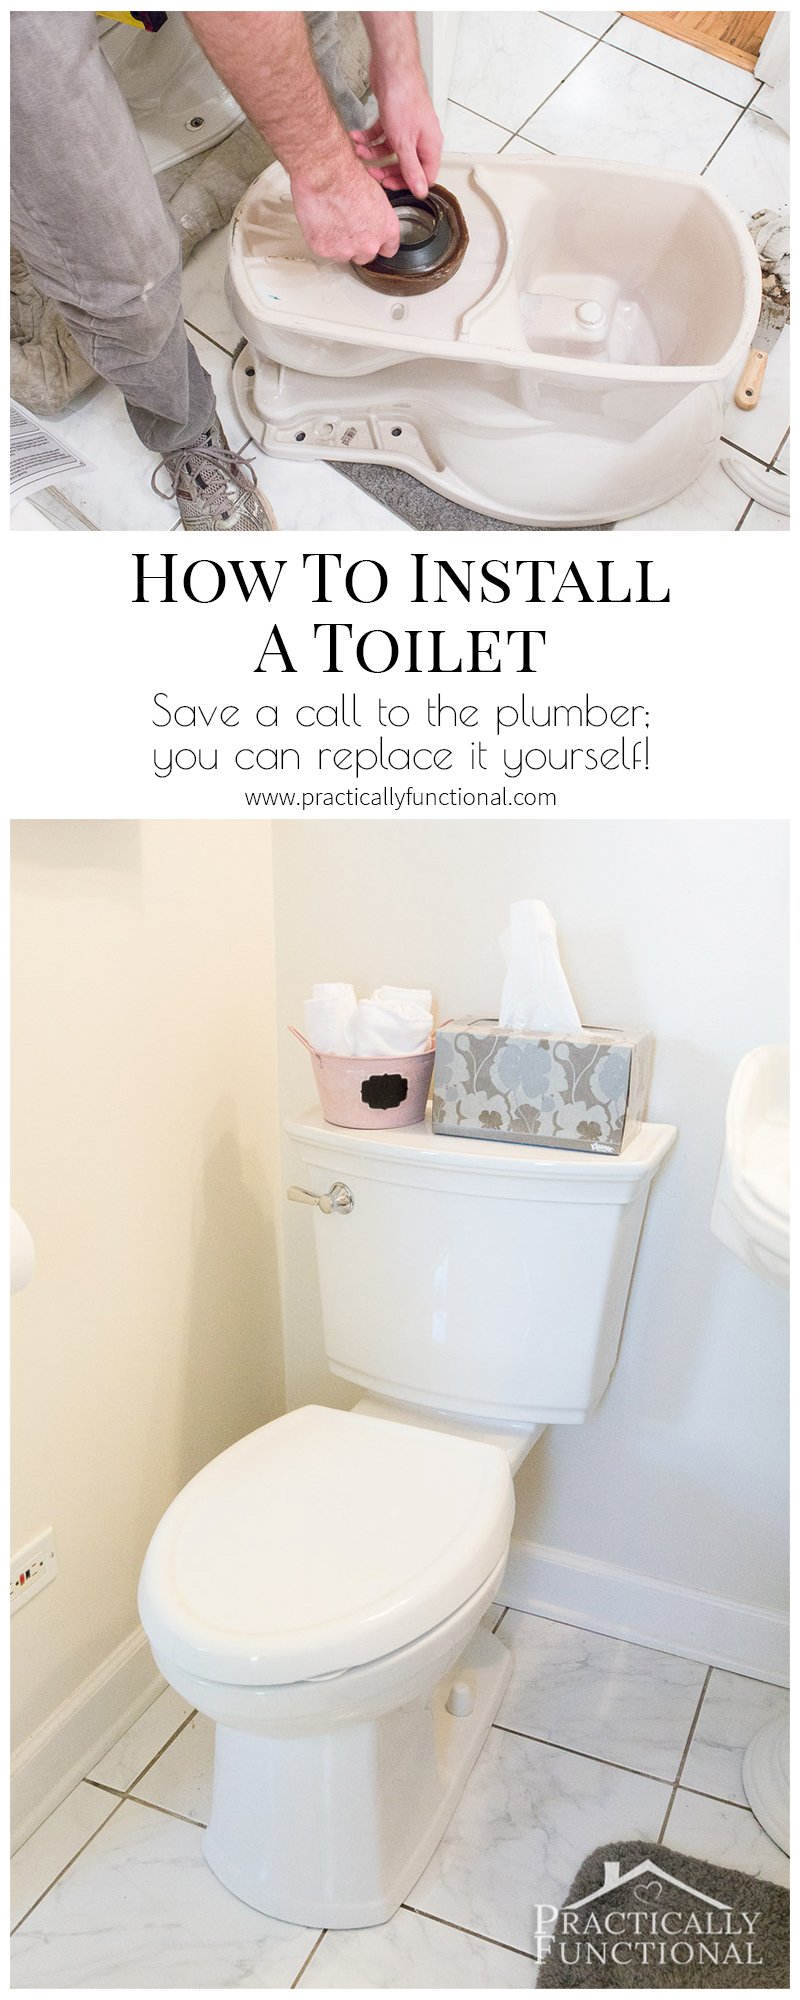 Learn how to install a toilet yourself with this tutorial!